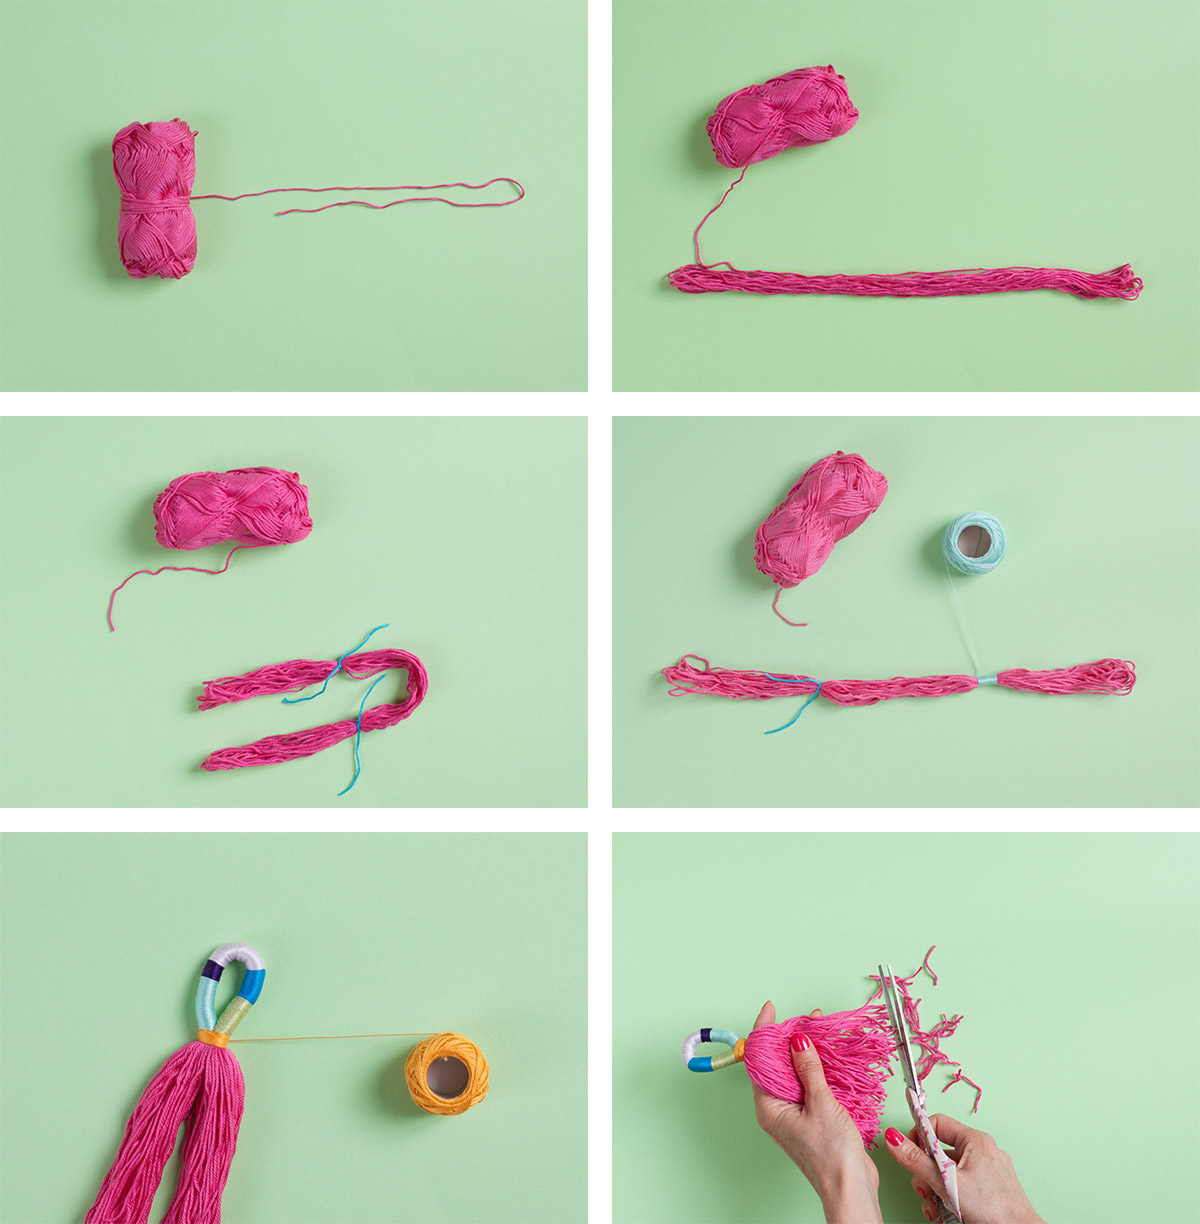 Multi-colored yarn tassels - Use them to accessorize your favorite handbag or hang them on your doorknob, so pretty! - www.yeswemadethis.com